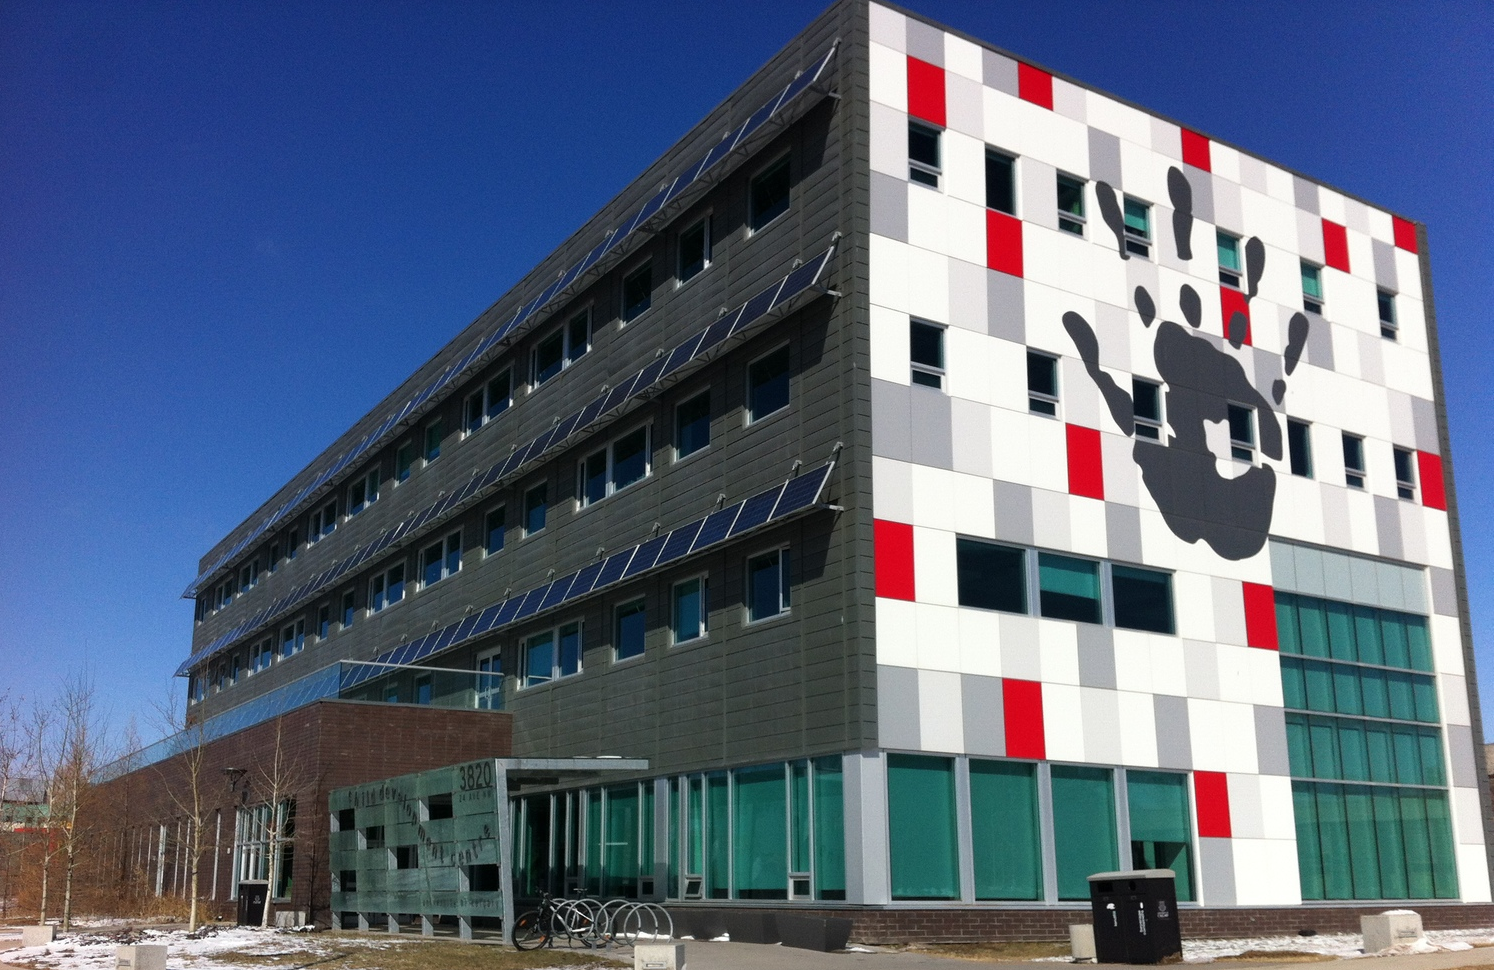 The Children's Development Centre located across the street from the Alberta Children's Hospital is home to several agencies that help children in need.  It was one of Calgary's first LEED buildings.